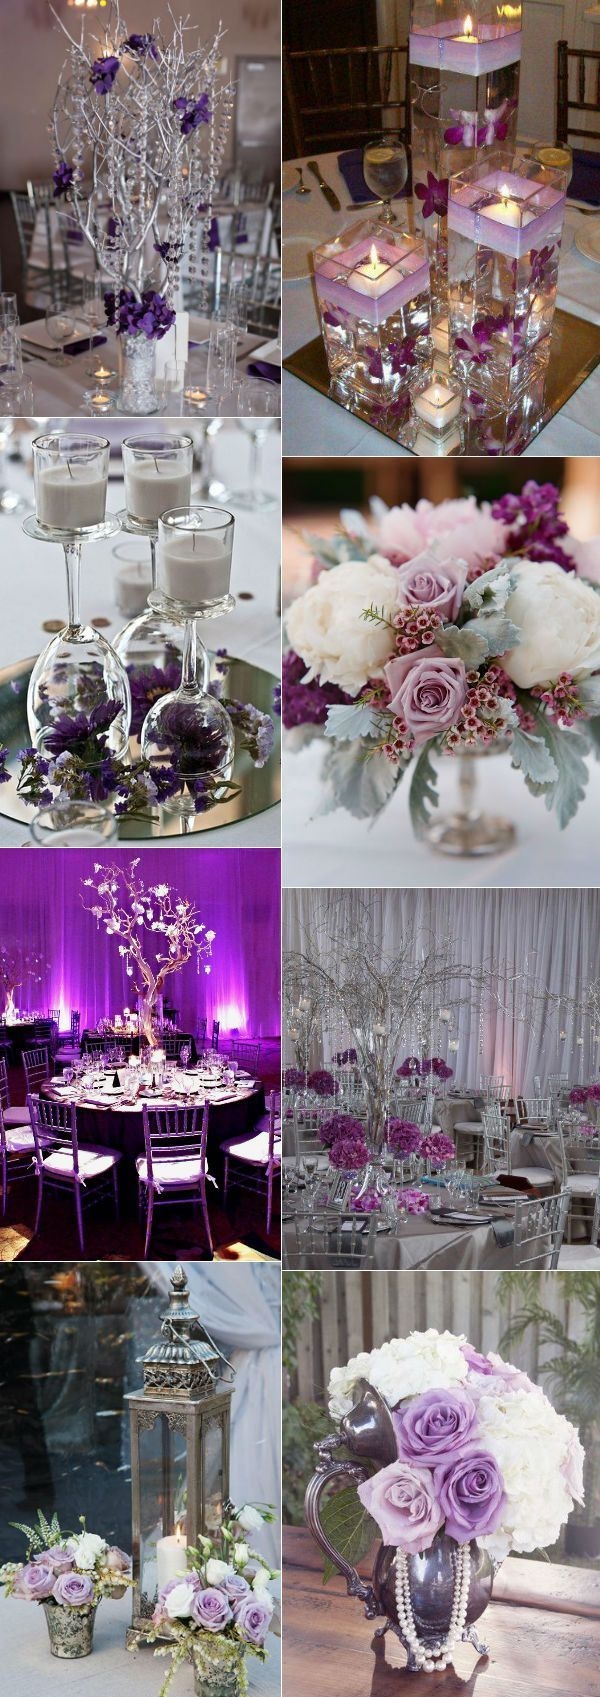 best purple and white wedding images on pinterest weddings